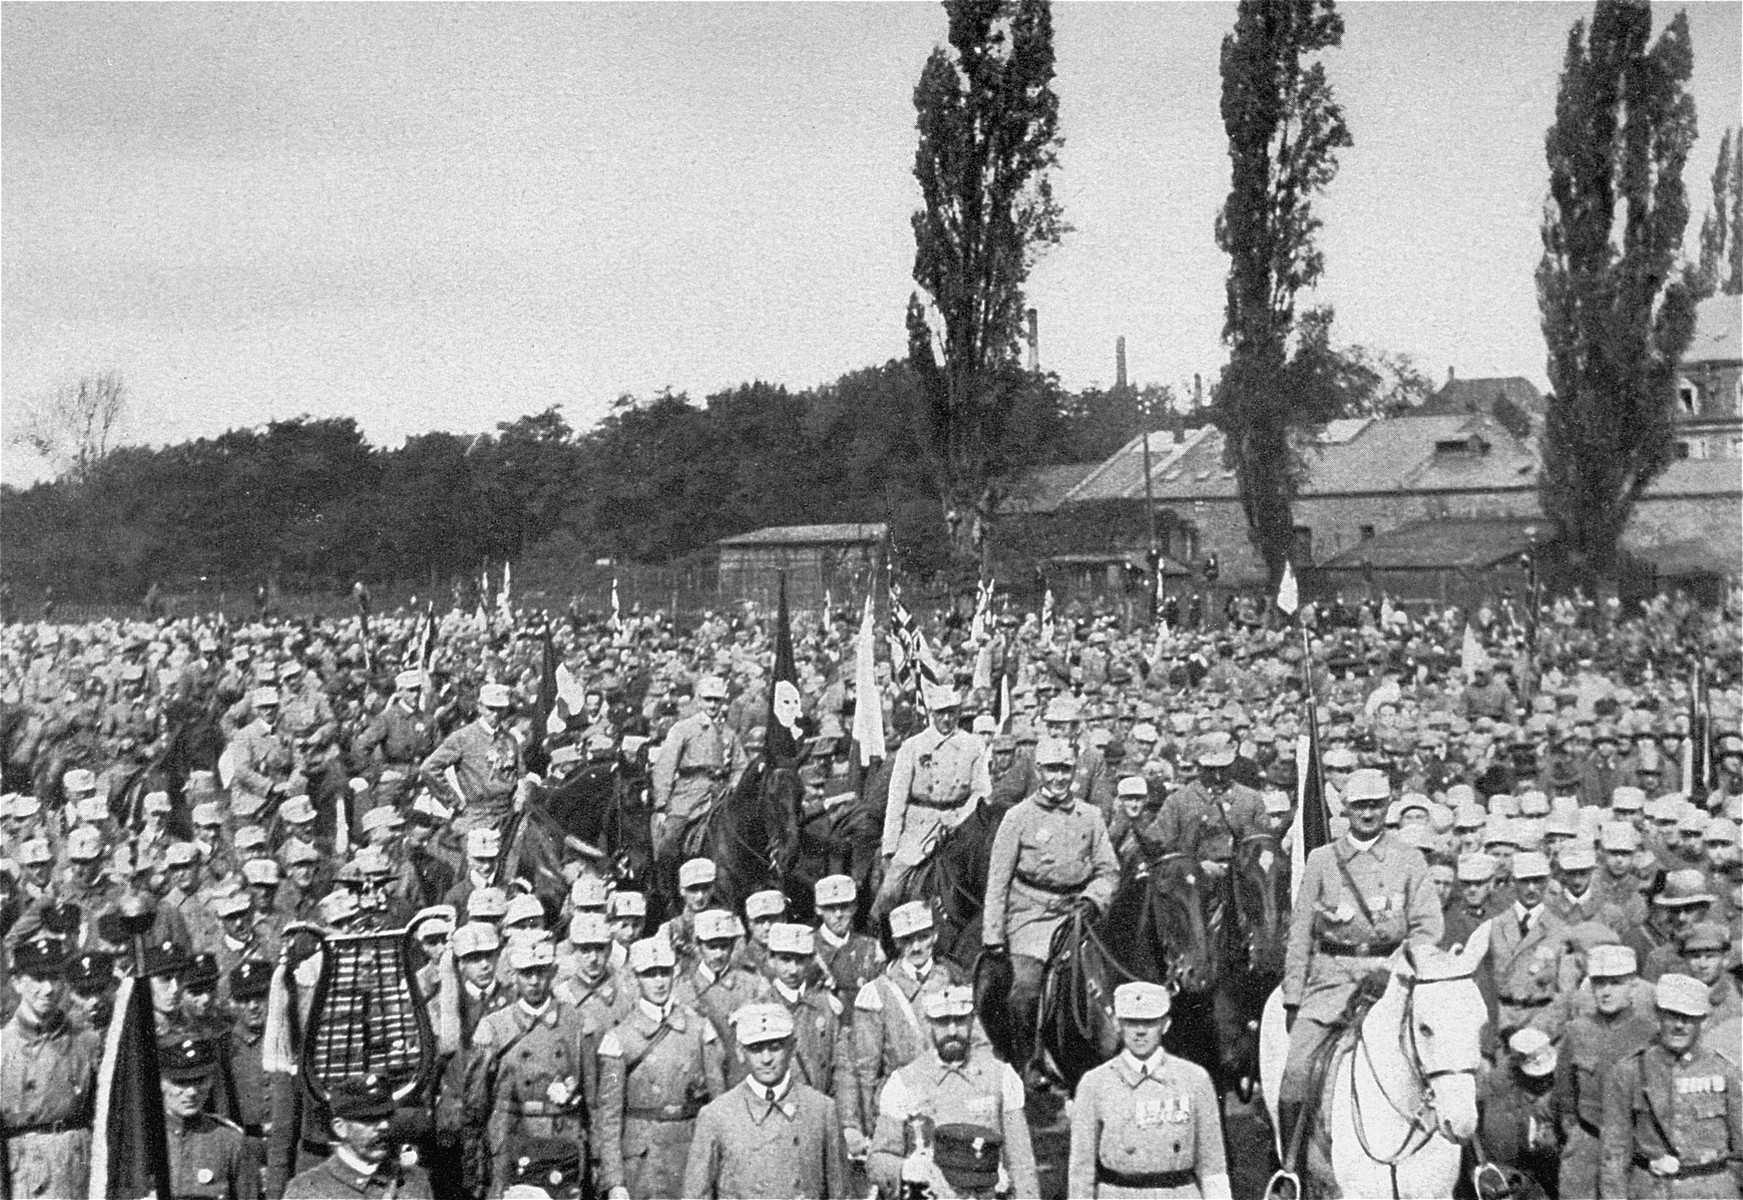 National Socialists gathered at the Deutscher Tag (German Day) rally in Nuremberg.    The Deutscher Tag rally became the official Reichsparteitag (Reich Party Day) after the Nazi seizure of power in 1933.